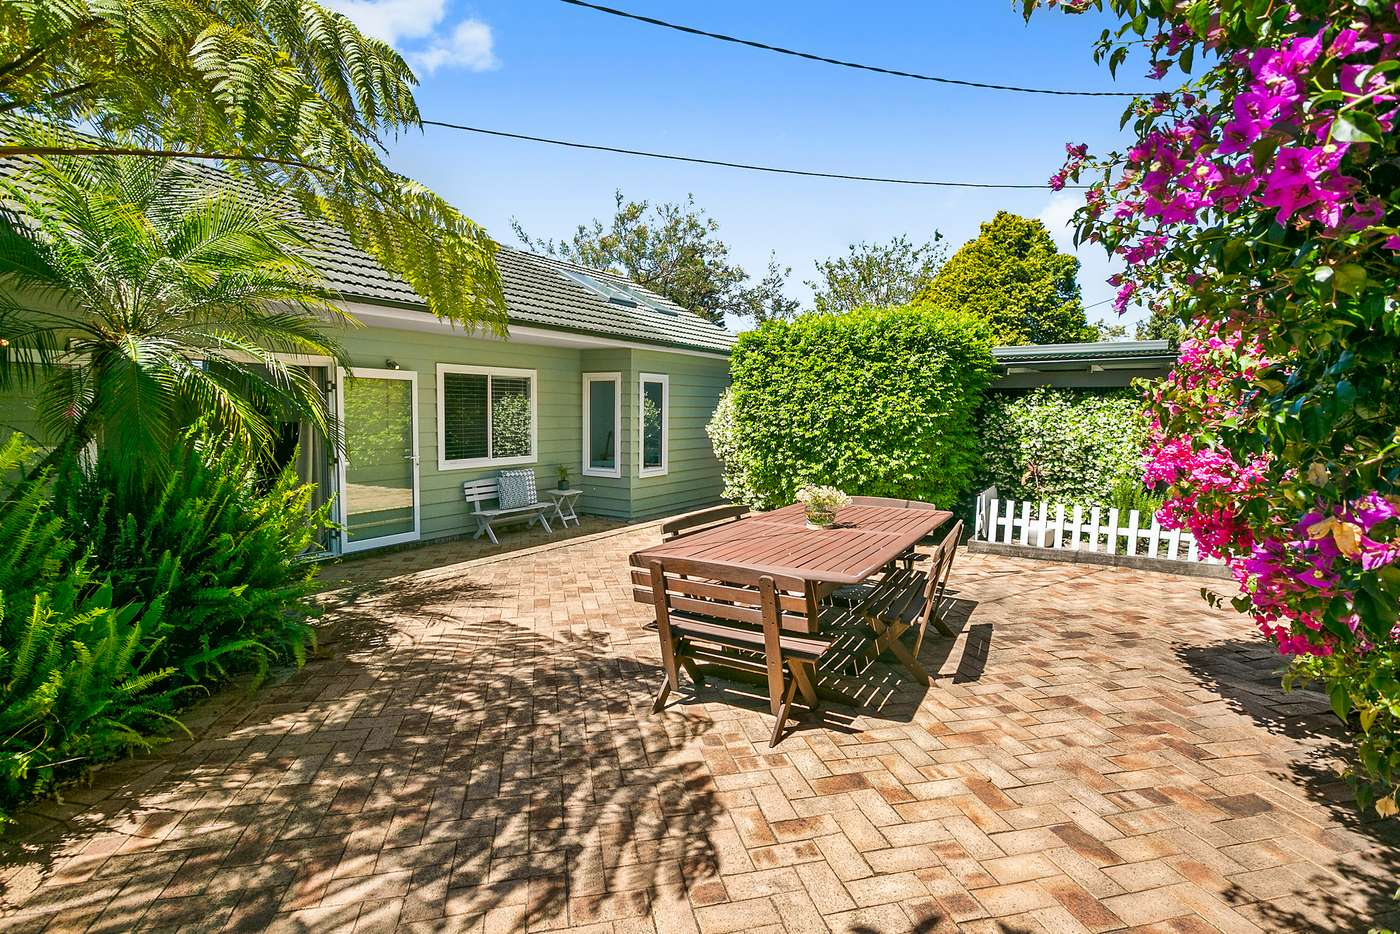 Main view of Homely house listing, 60 Tennyson Road, Cromer NSW 2099